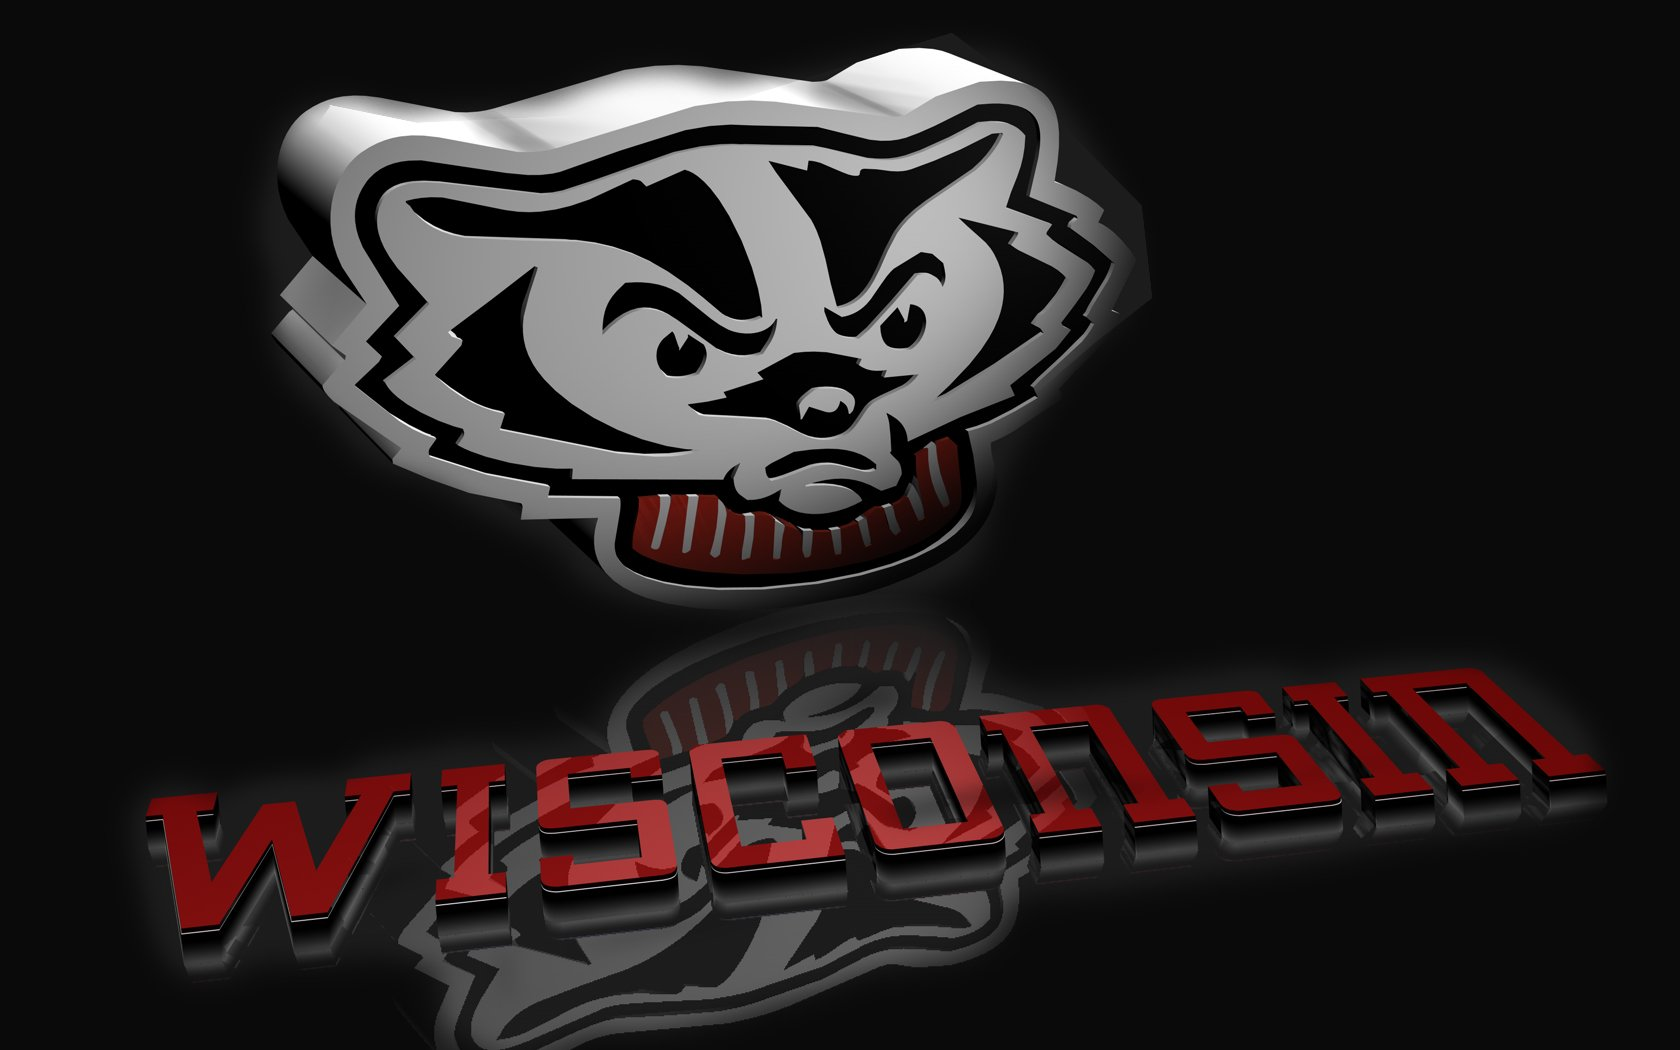 wisconsin badgers 482 x 123 11 kb png wisconsin badgers football 1024 1680x1050